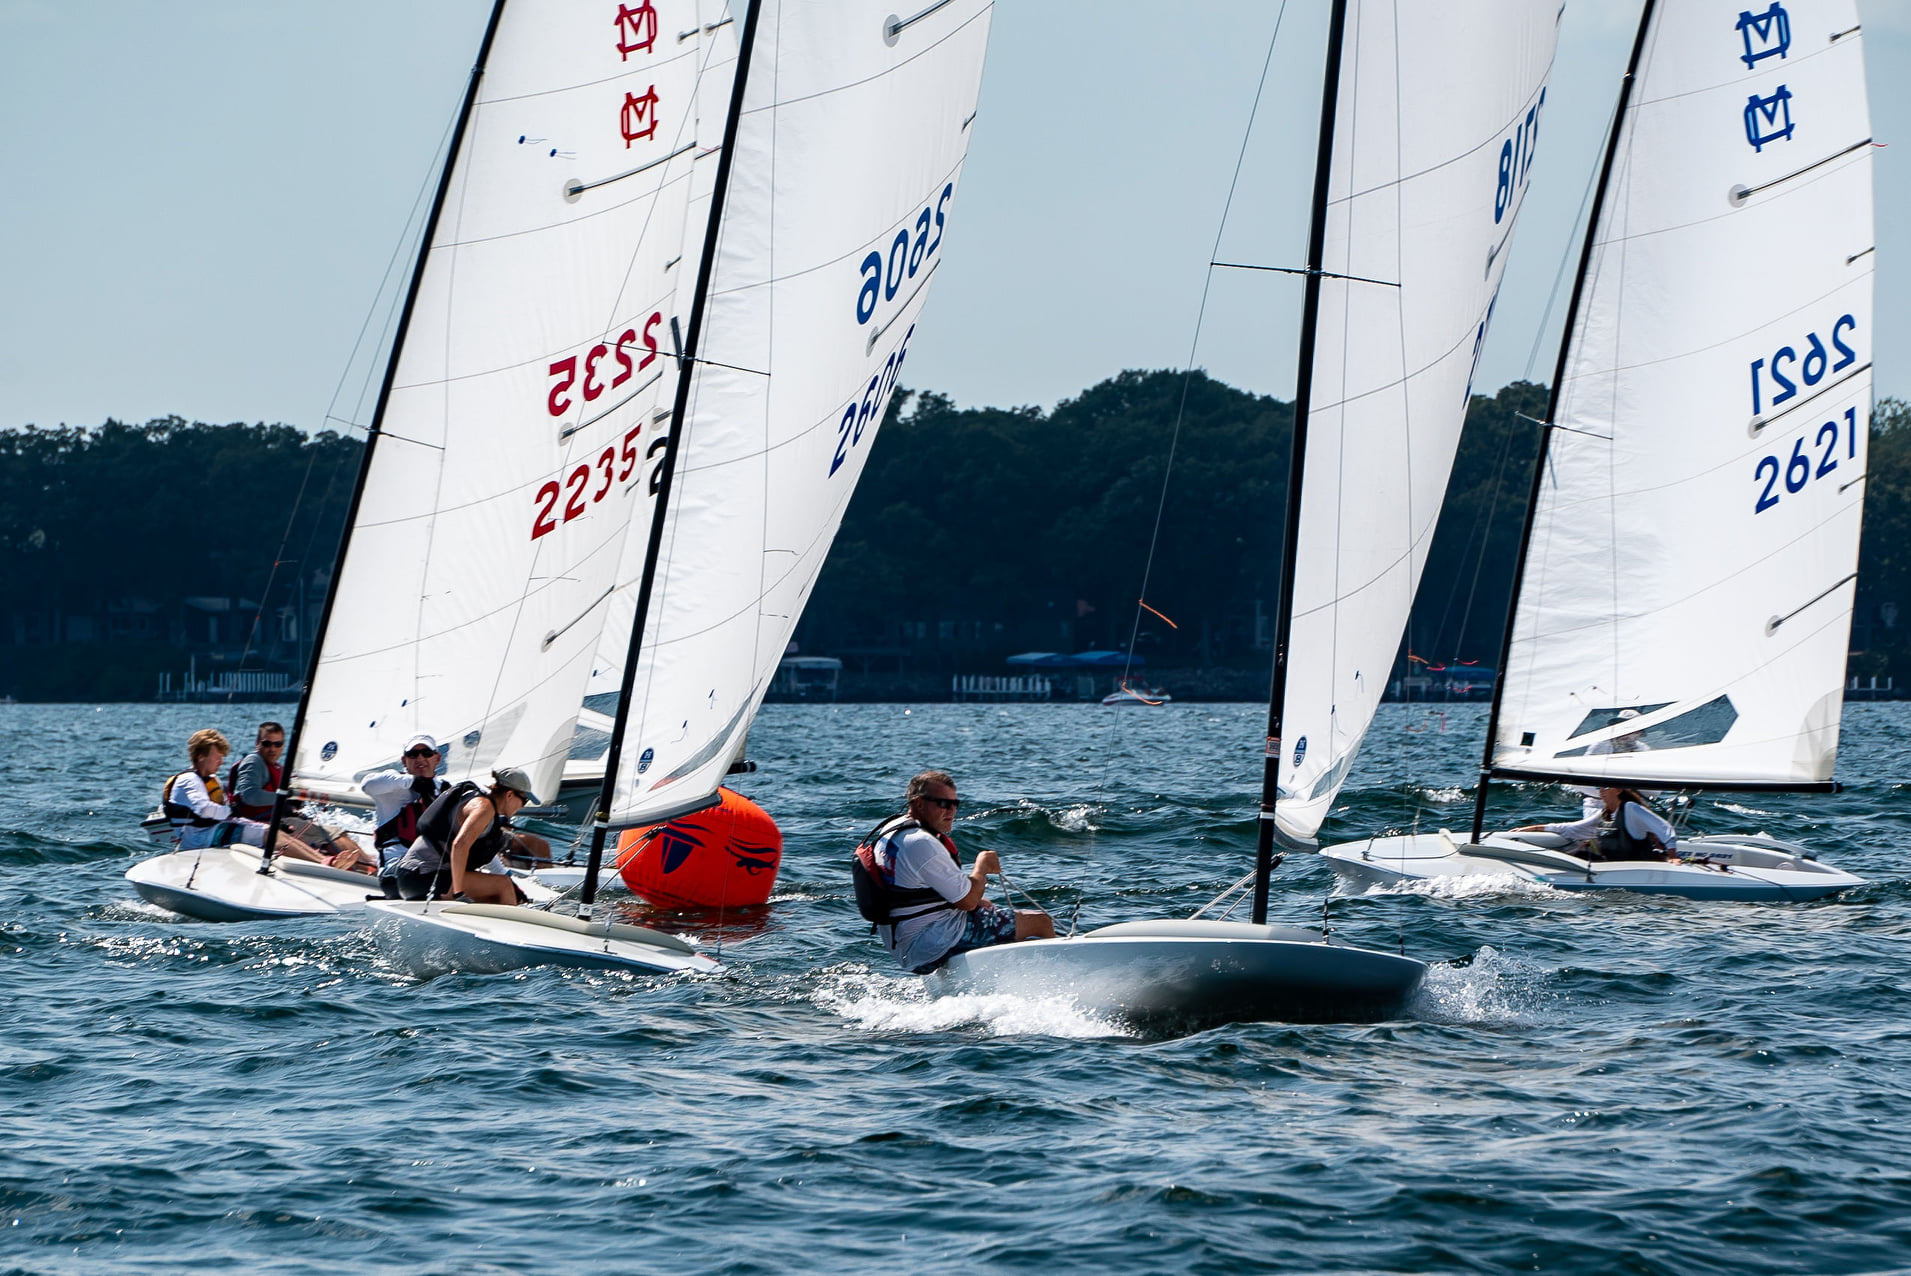 Podium sweep at the MC Scow Inlands